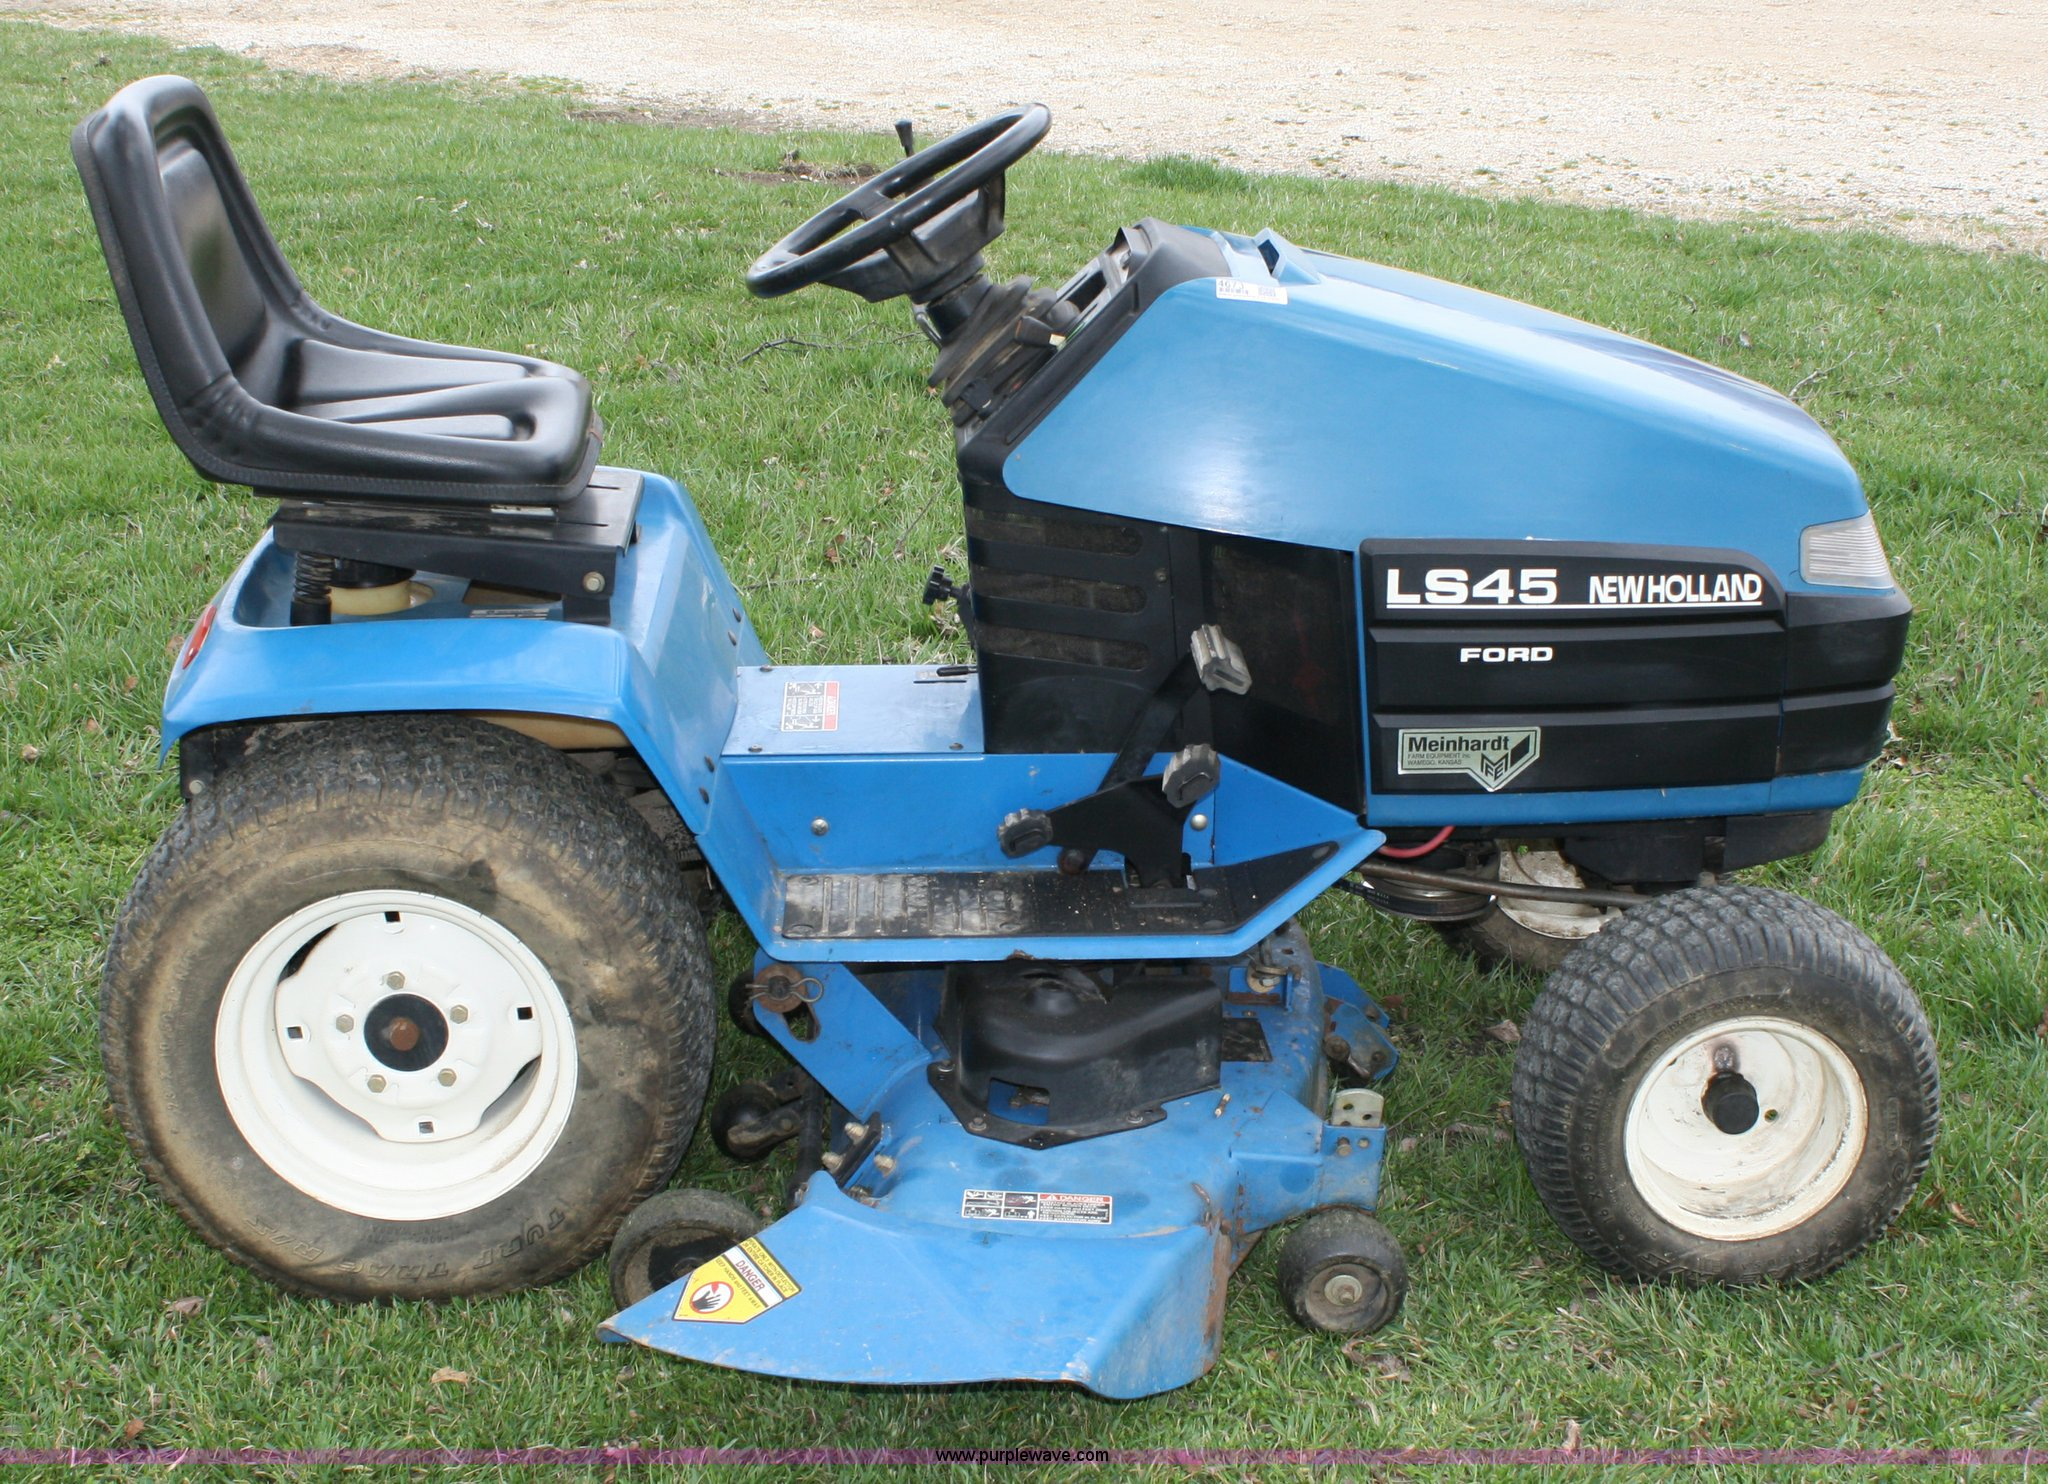 wiring diagram for ls45 new holland trusted wiring diagrams rh hamze co  LS45 New Holland Service Manual New Holland LS45 Garden Tractor